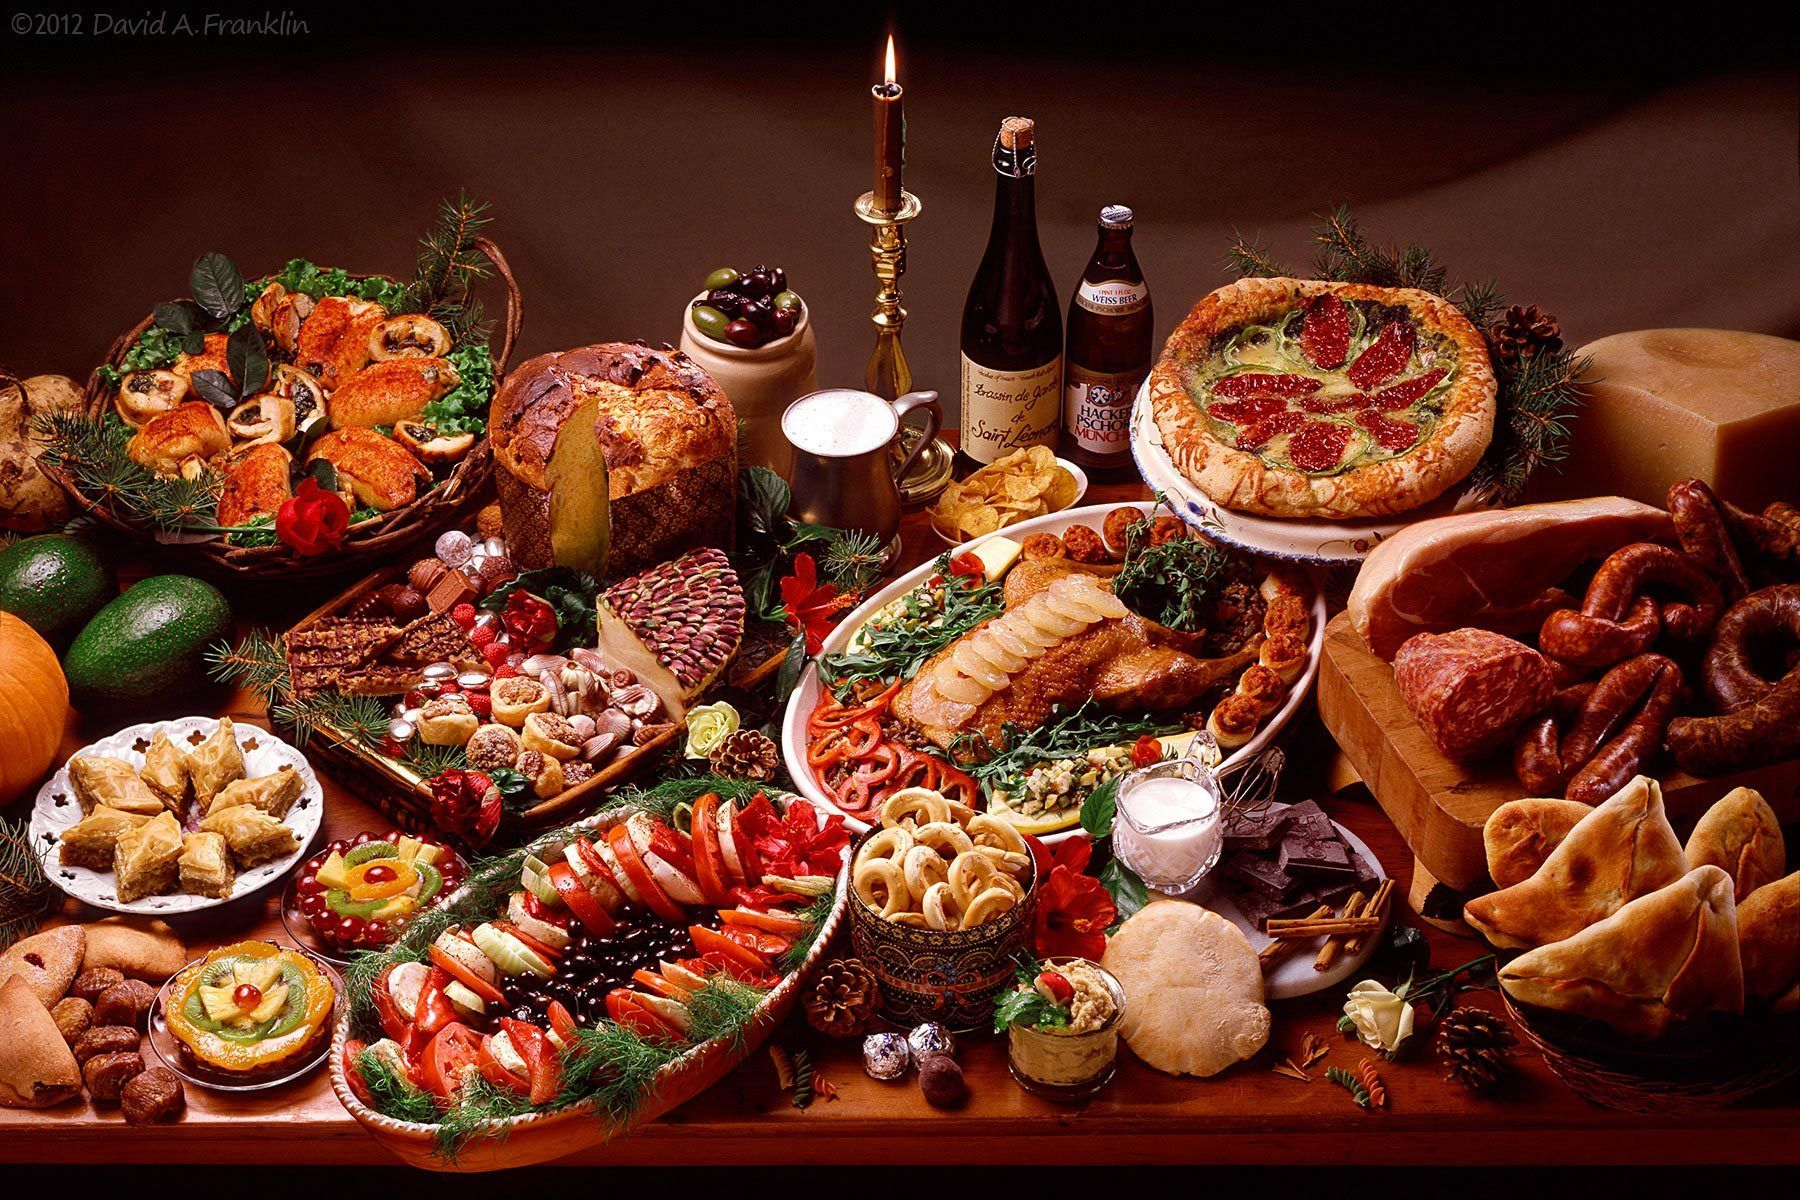 ChristmasFeast_GreatVarietyOnVeryLargeTable_Editorial